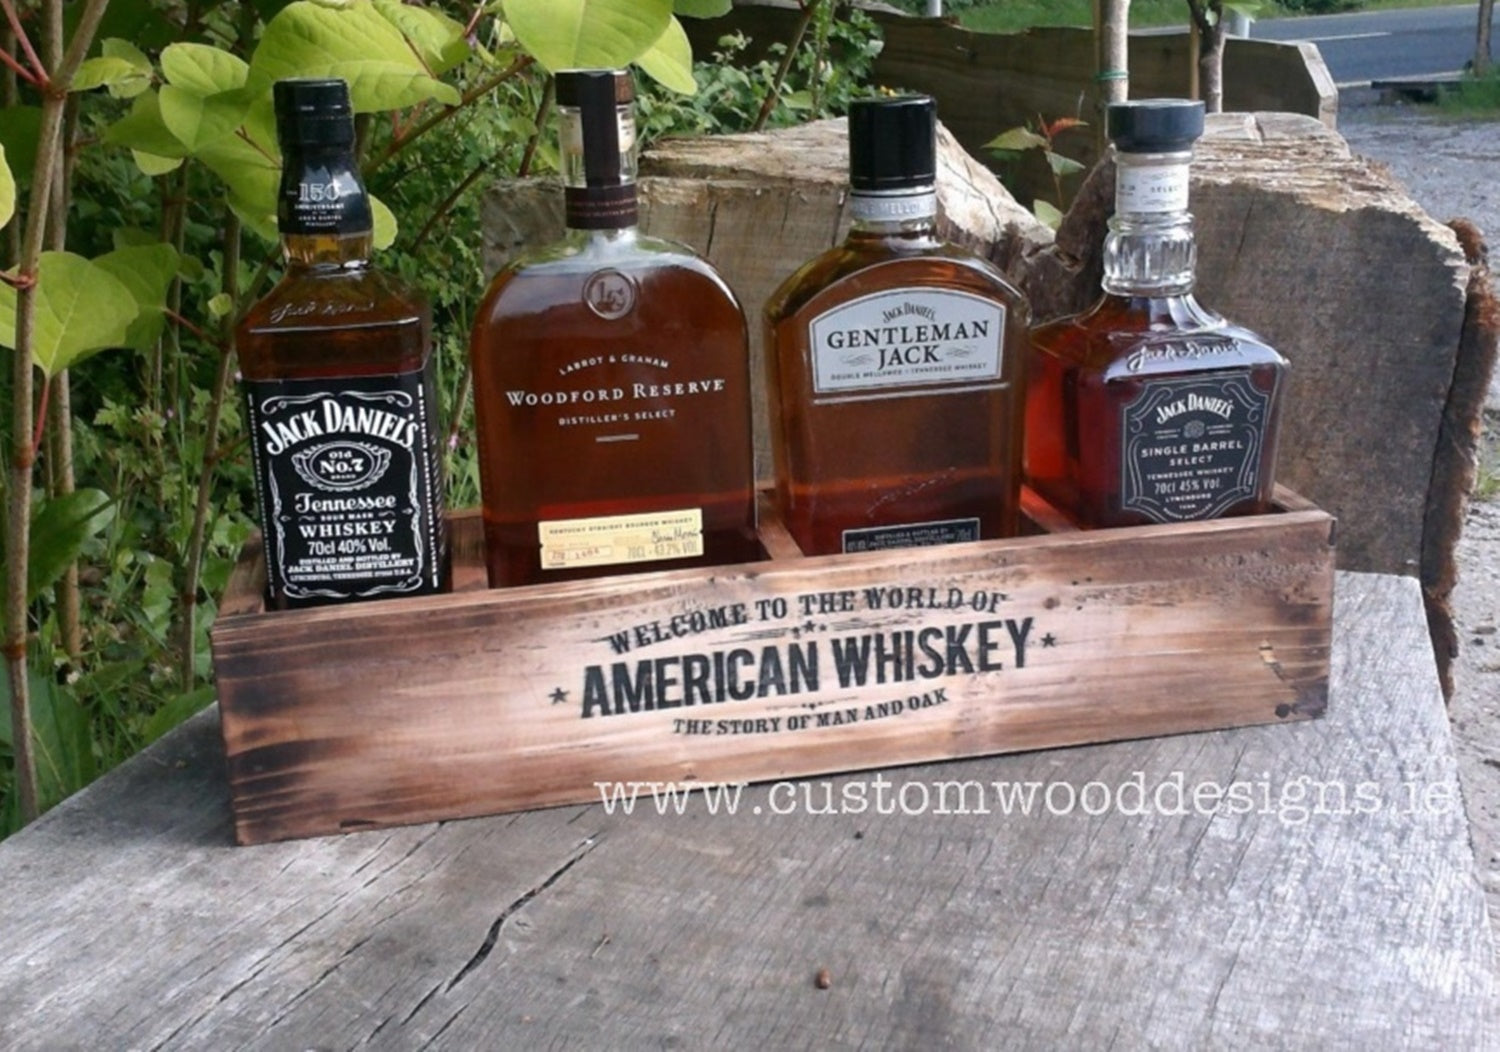 brown rustic with lights jack daniels point of sale retail display point of sale free standing europenan manufacturer custom wood designs Ireland Irish designs manufacture